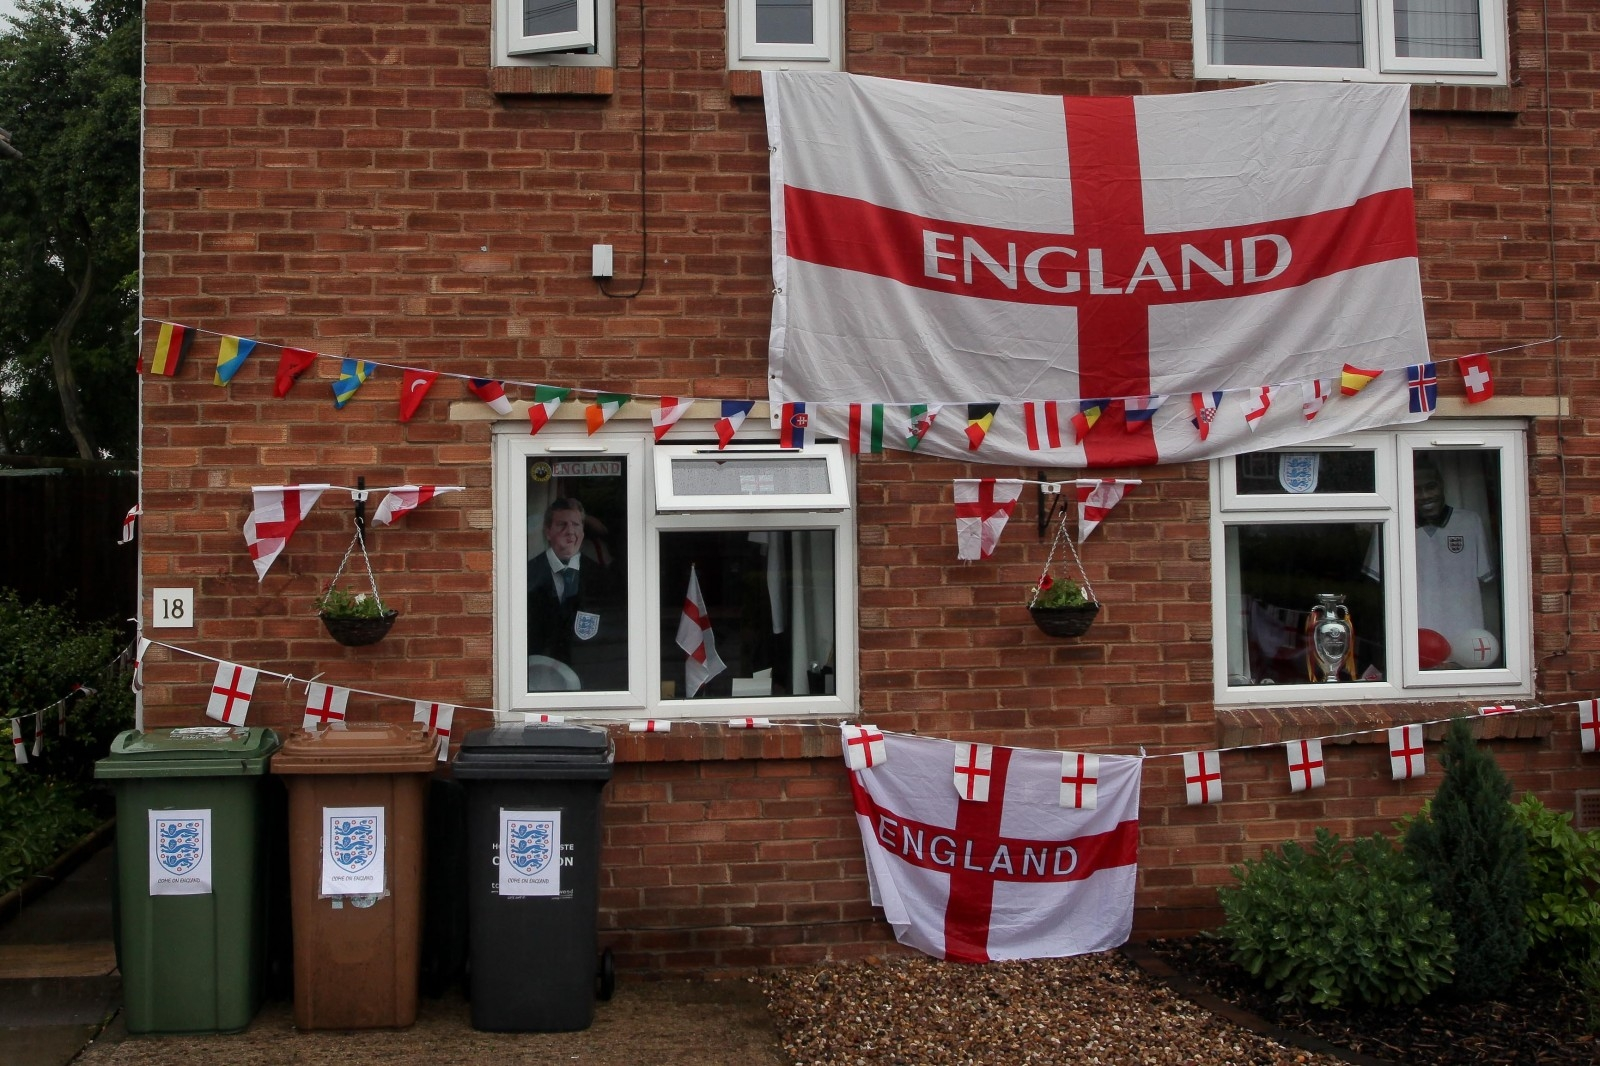 Even the outside of the house has been decorated for the tournament